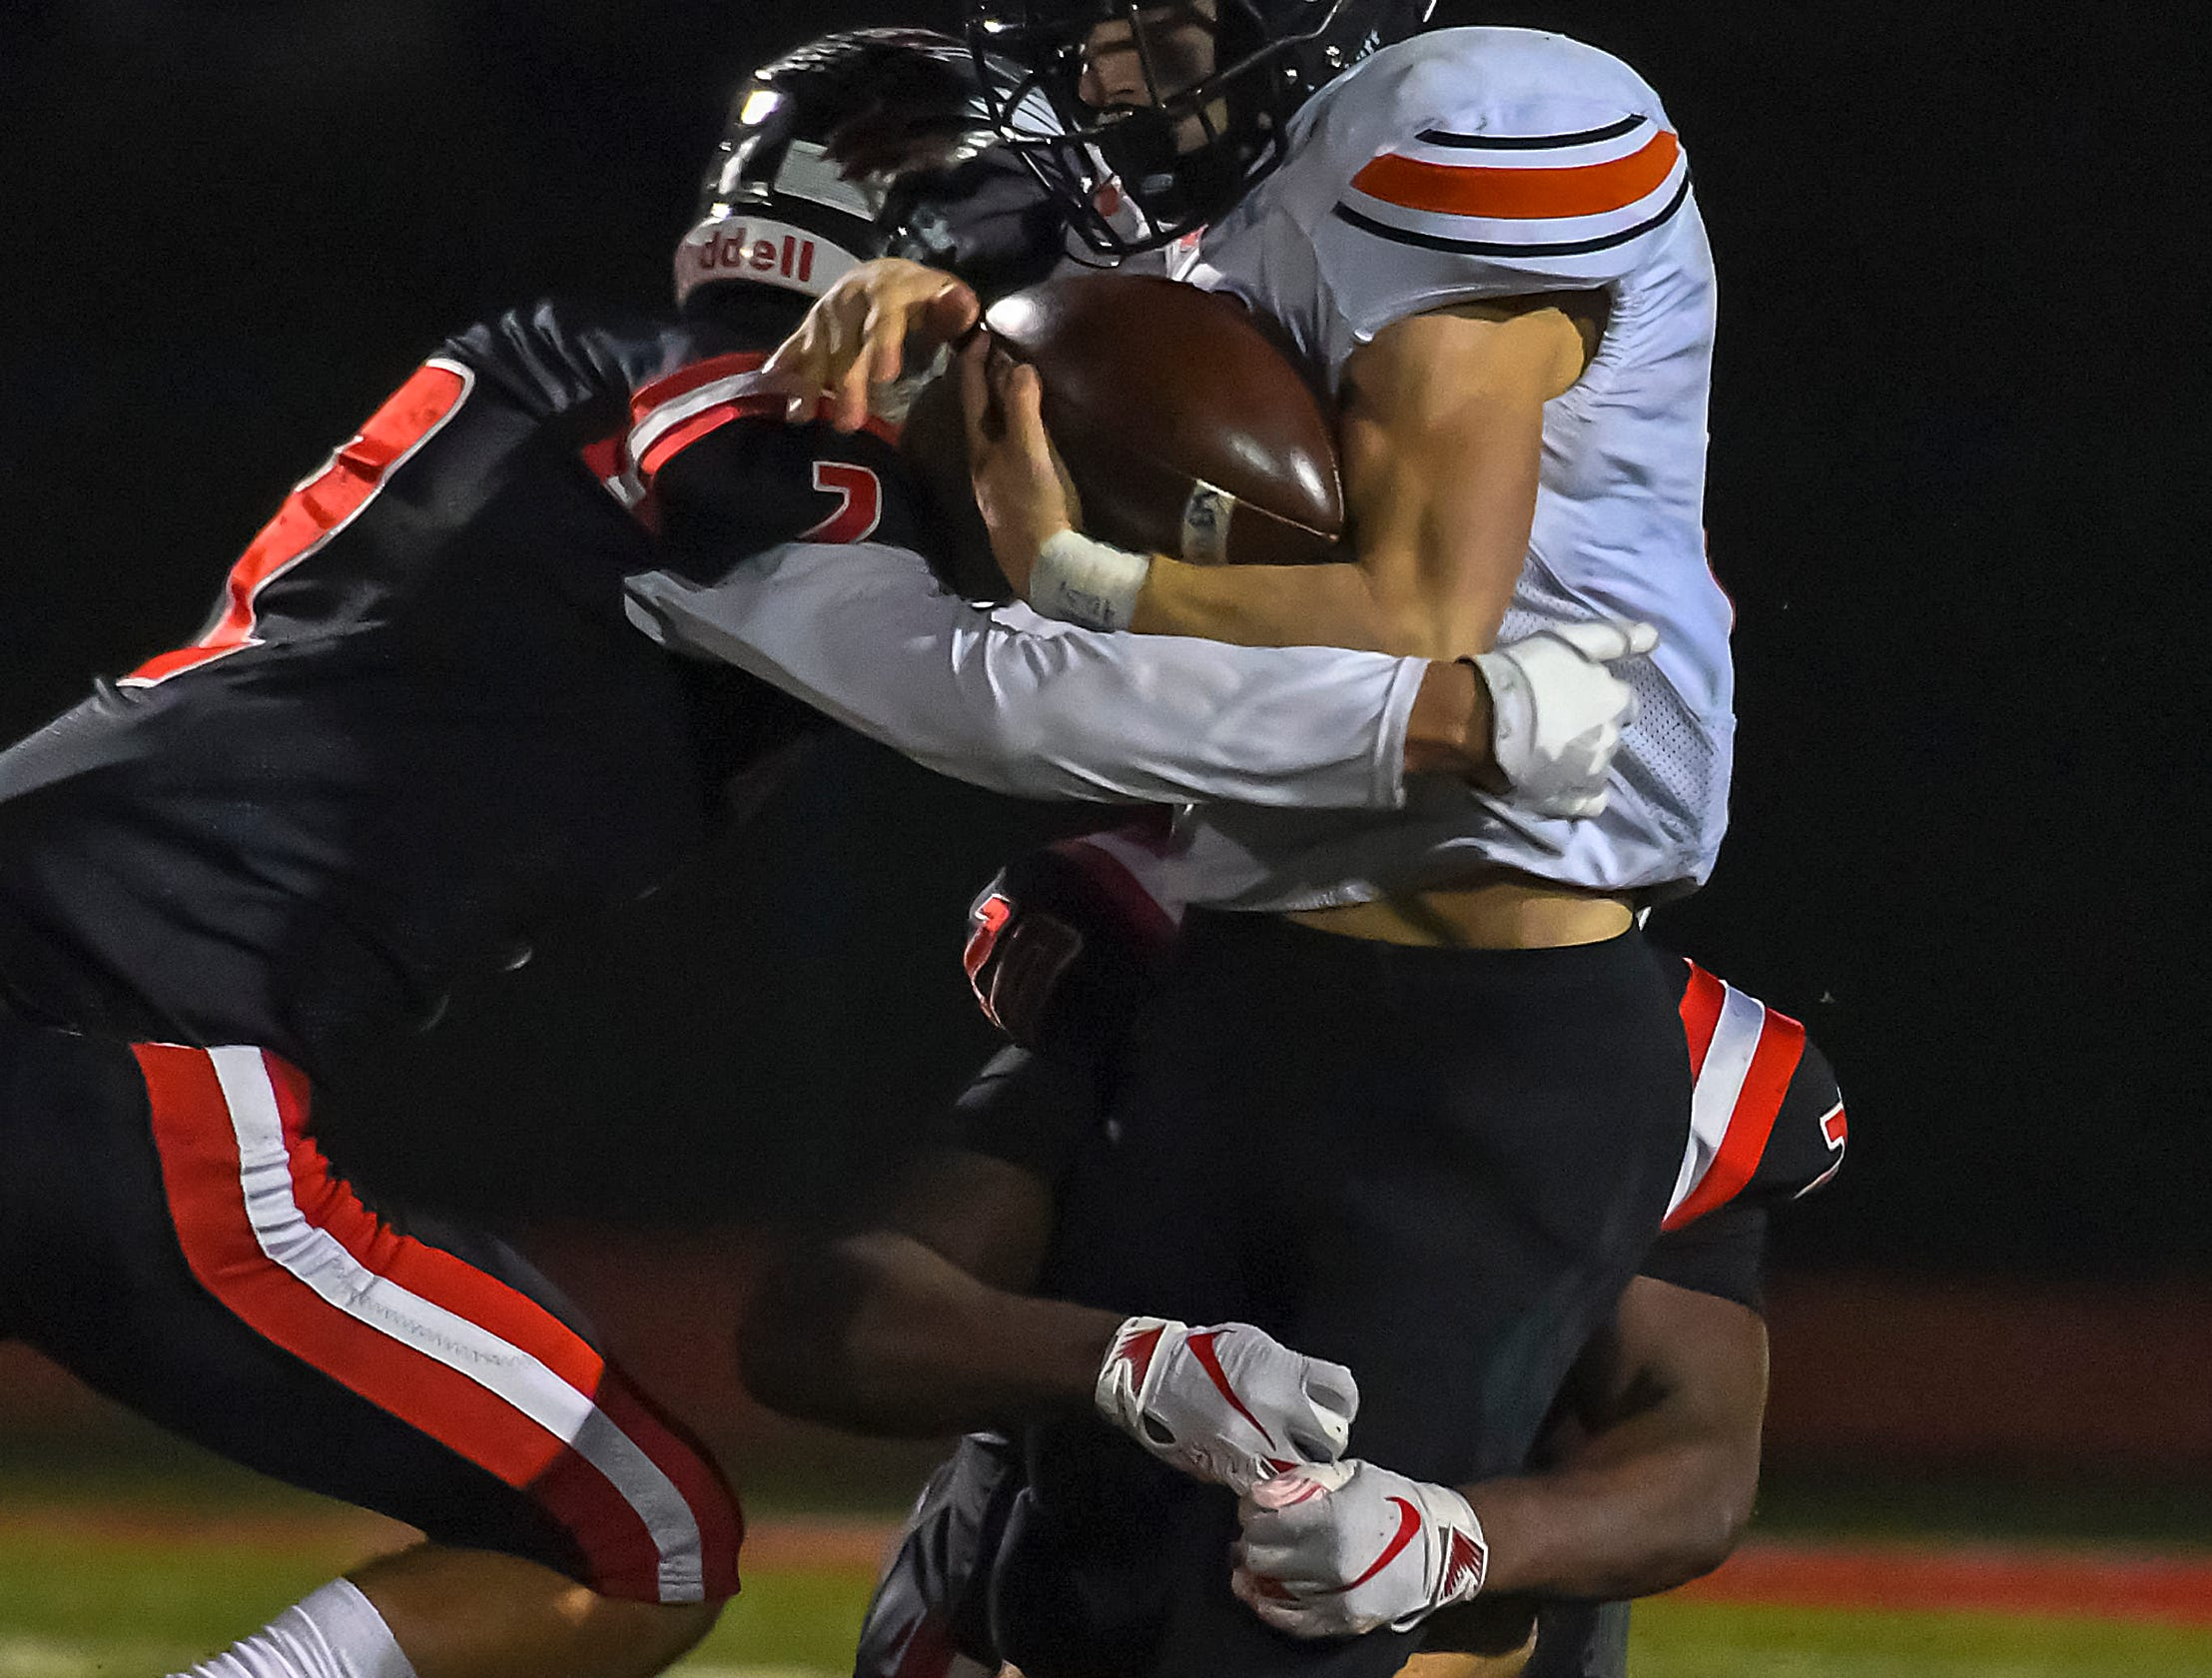 Payton Shoemaker (10) of Waverly is tackeled by Indian Hill defenders in the OHSAA D4 Region 16 Playoffs at Indian Hill High School, Saturday, Nov. 3, 2018